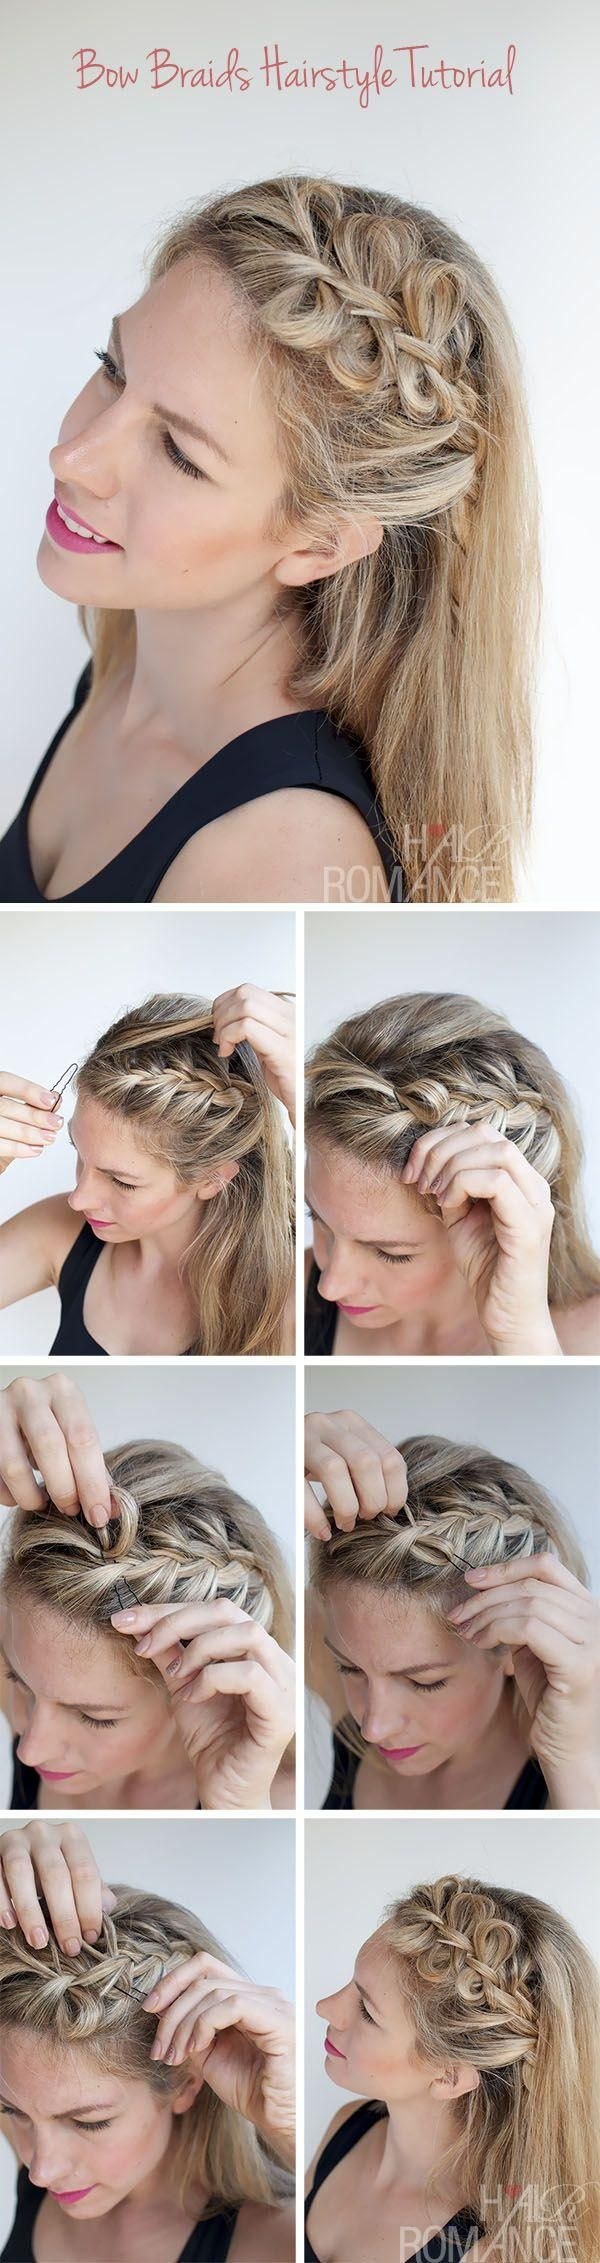 best work the hair girl images on pinterest hairstyles